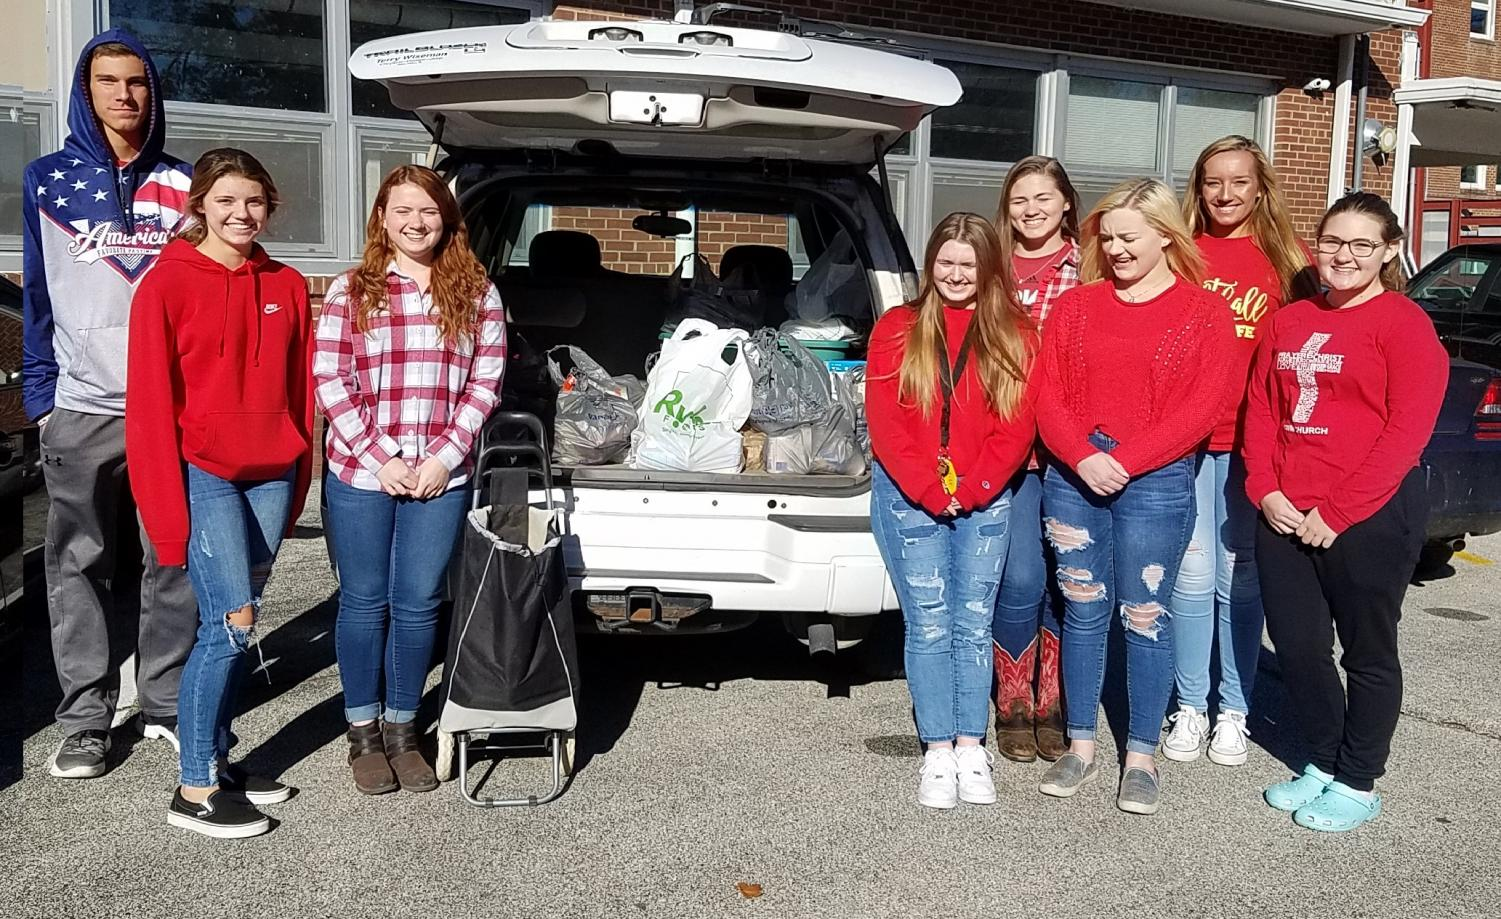 Pay It Forward members pose with canned items collected during the 2019 Trick or Treat for Cans Halloween night.